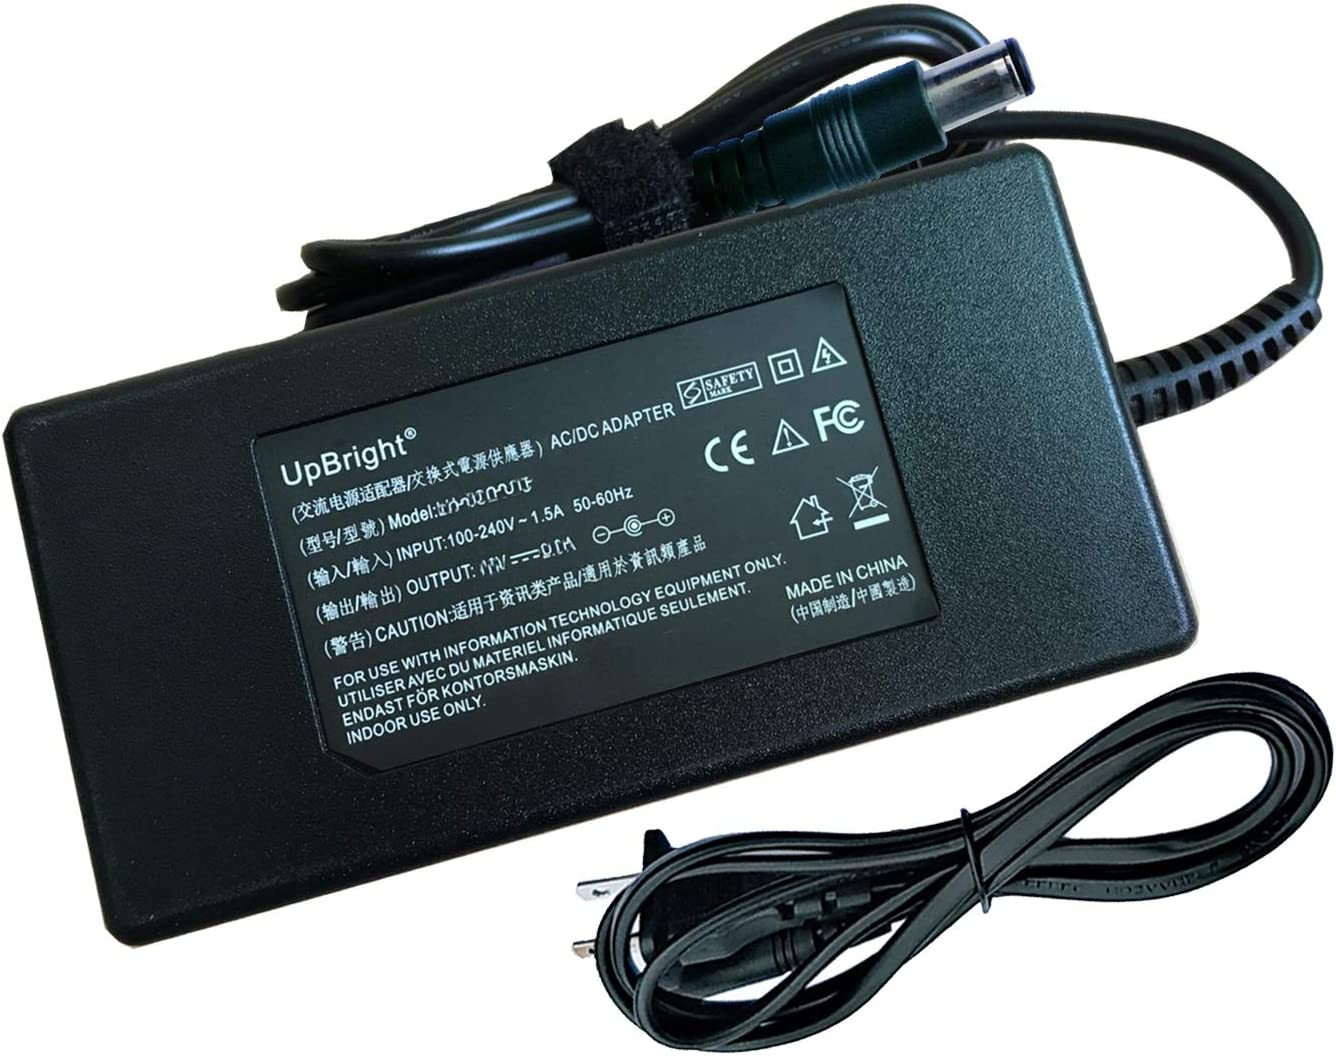 Accessory USA 48V AC DC Adapter for Amcrest NV1104E 1080P 8-Channel Network POE Video Recorder 48VDC Power Supply Cord